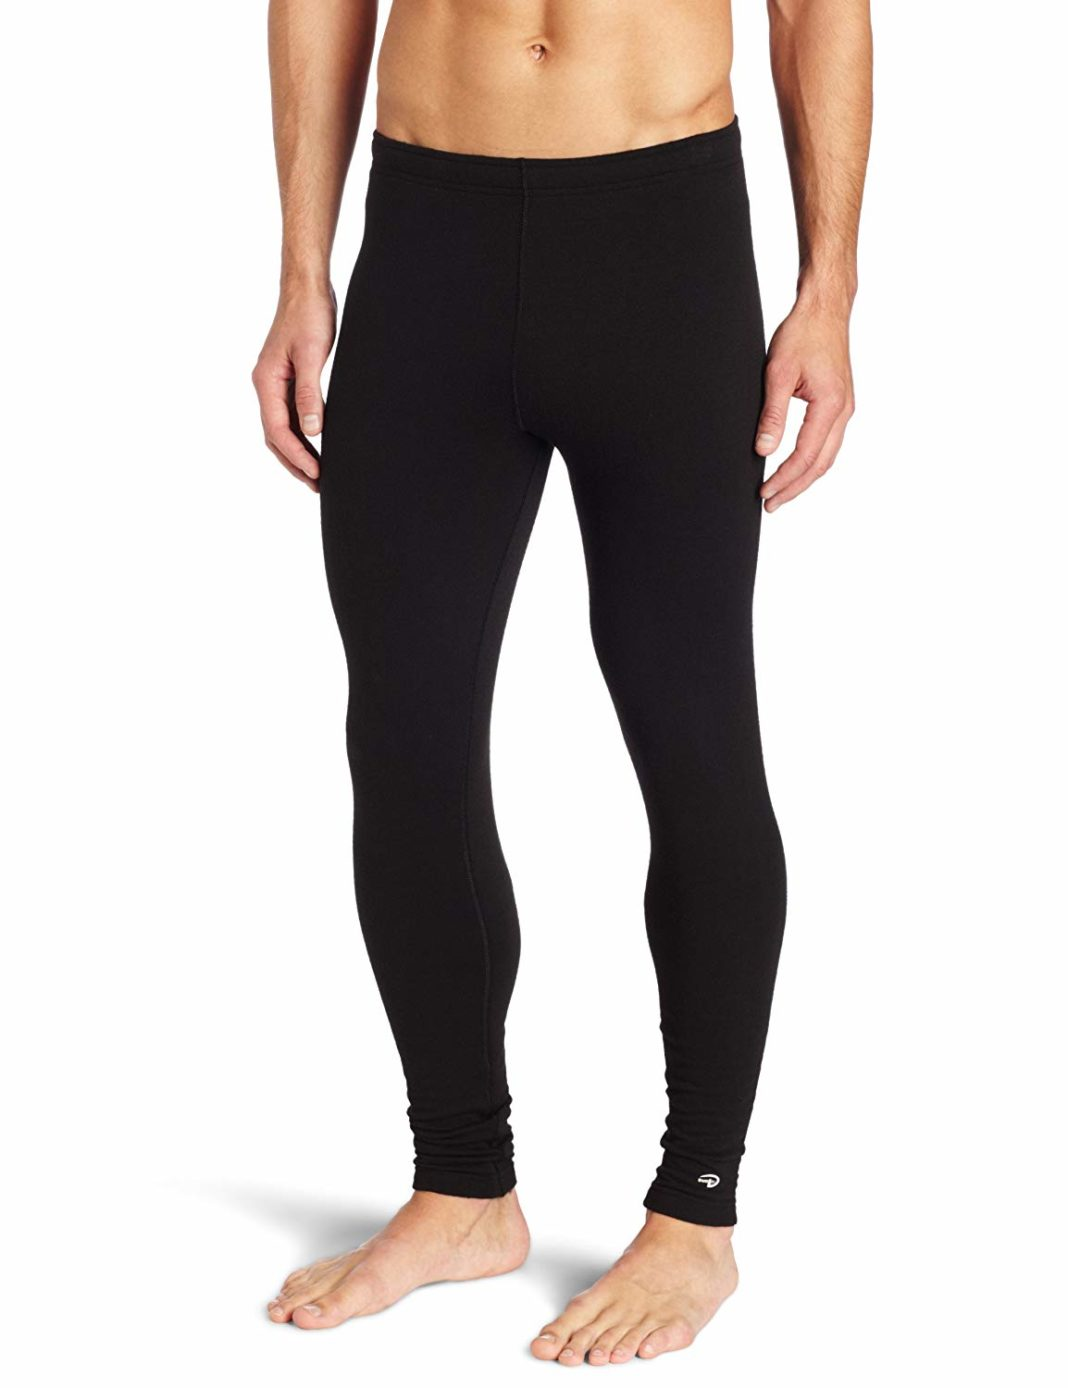 Duofold Originals Men's Thermal Pants - Length and Stretch